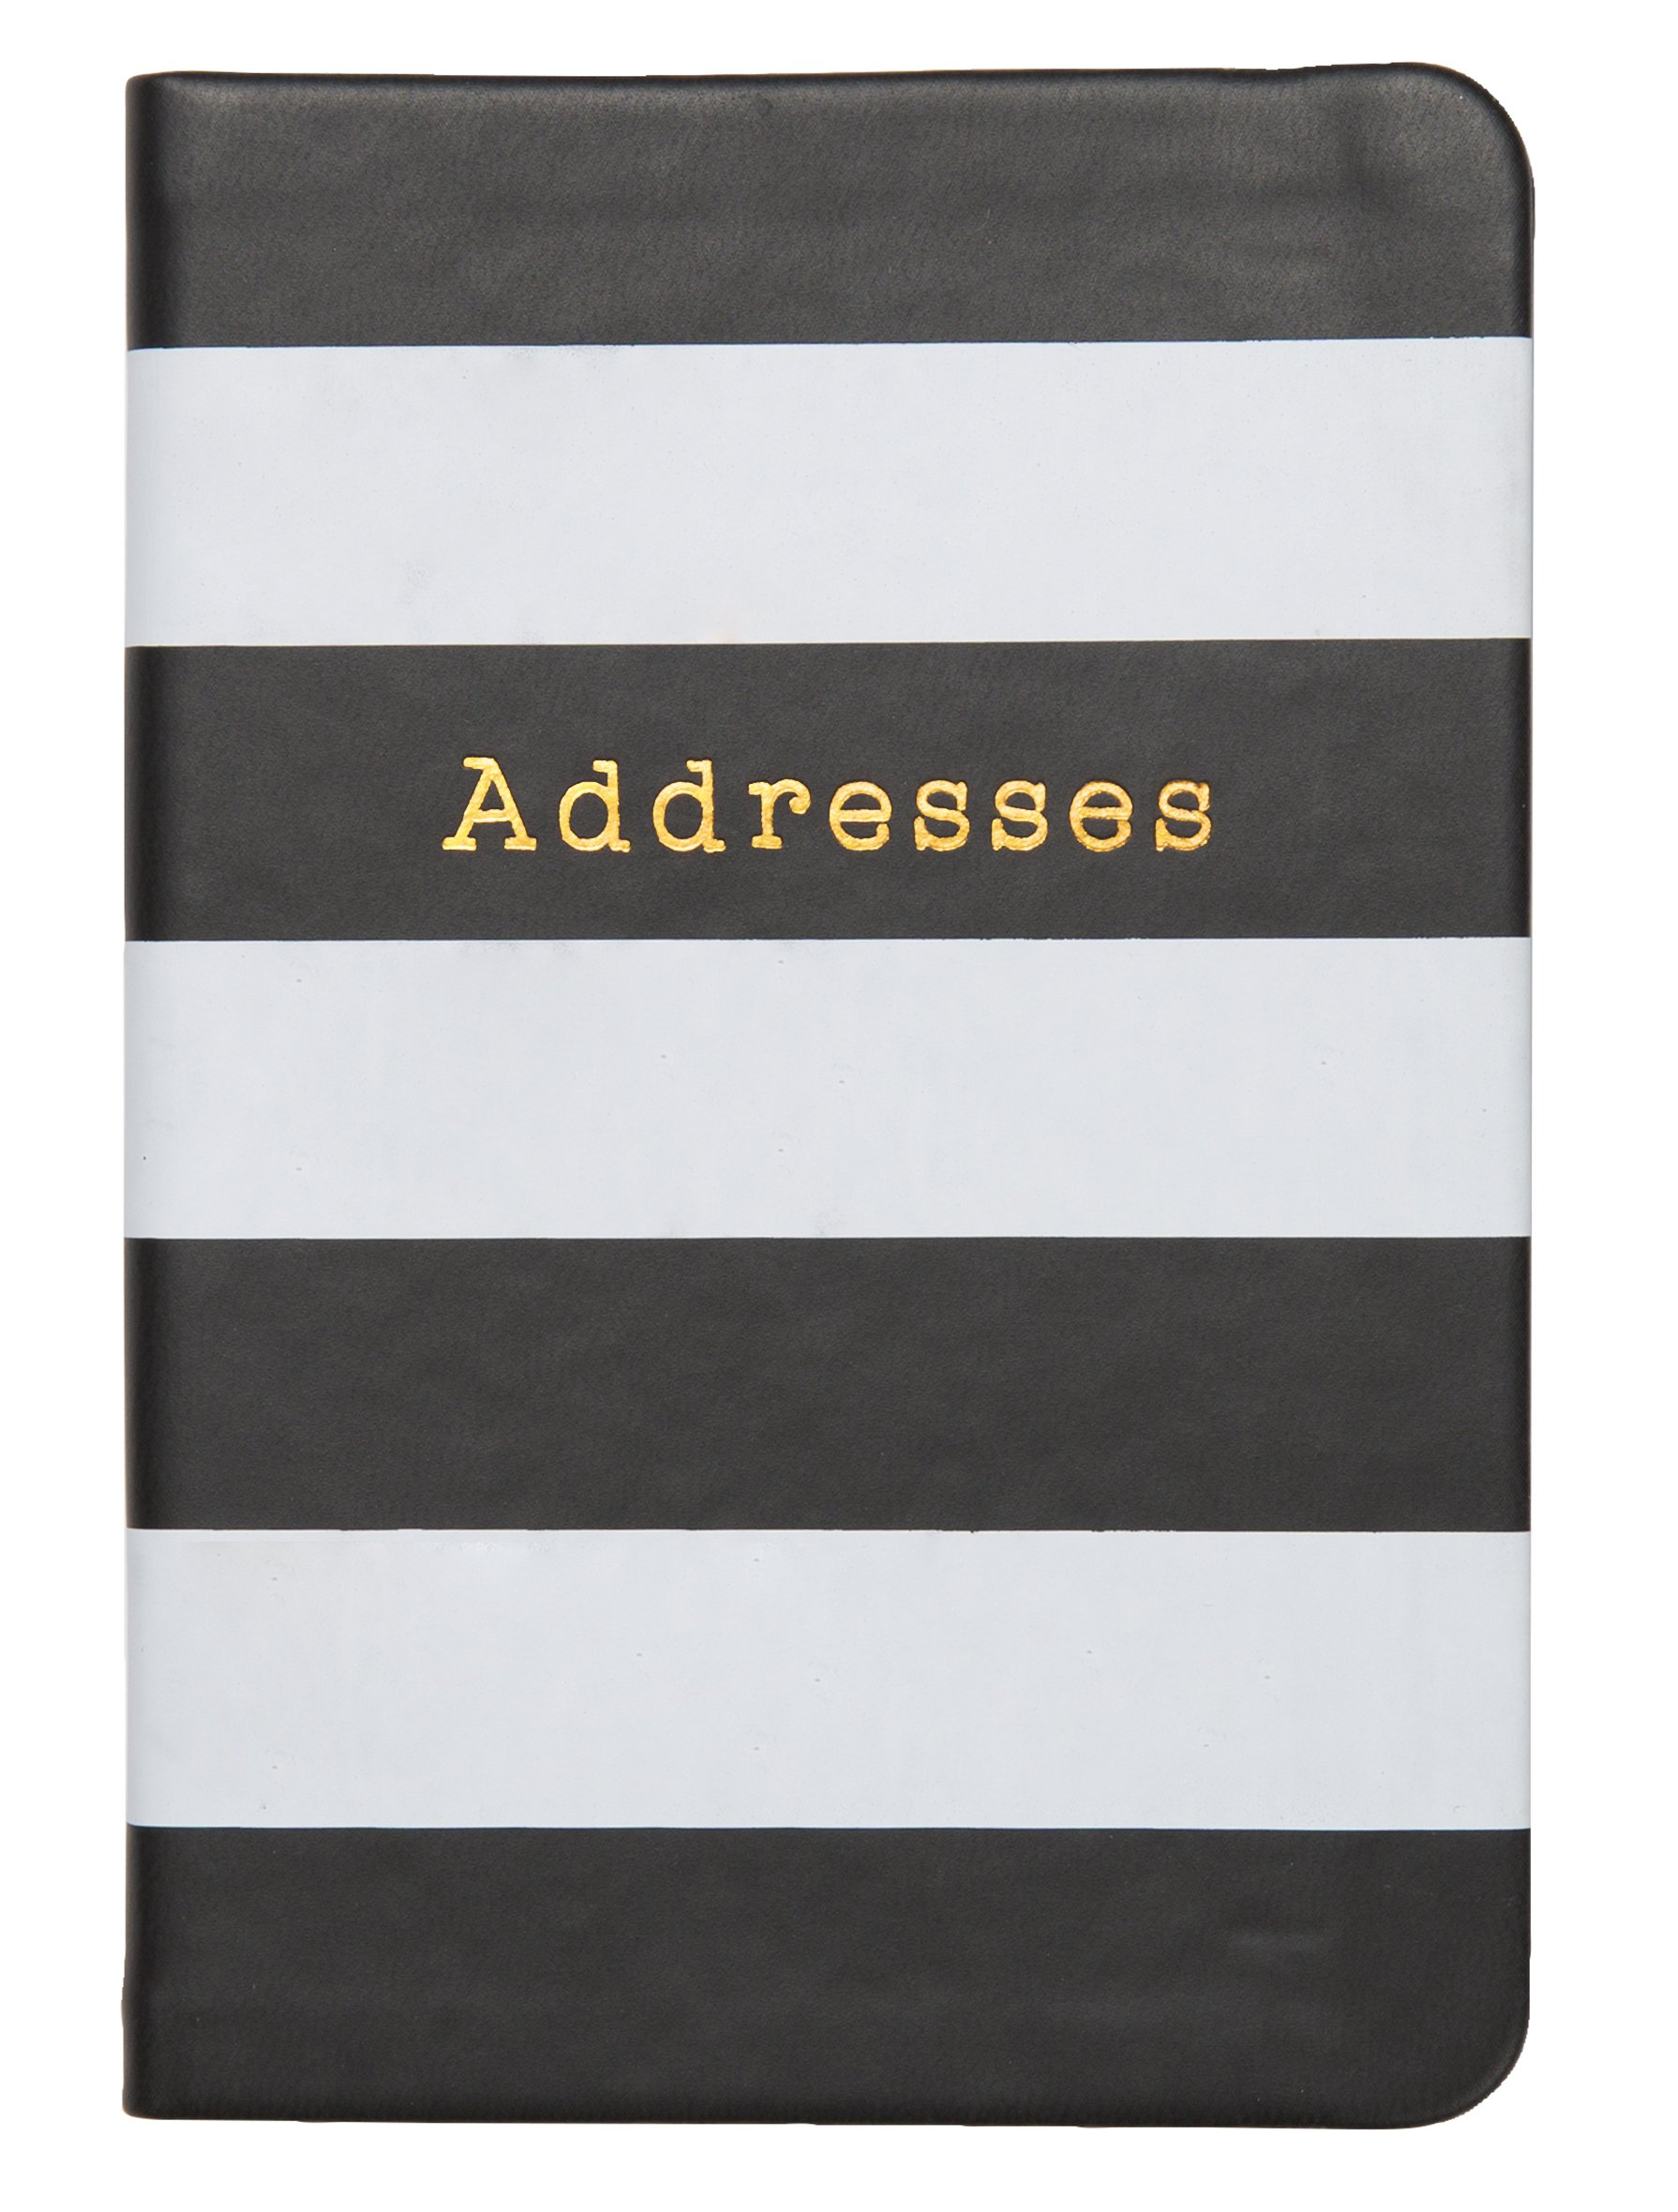 C.R. Gibson Small Address Book, 192 Pages, Debossed Leatherette Cover, Storage Pocket, Monthly Pages, Measures 3.5'' x 5.5'' - Black & White Stripes